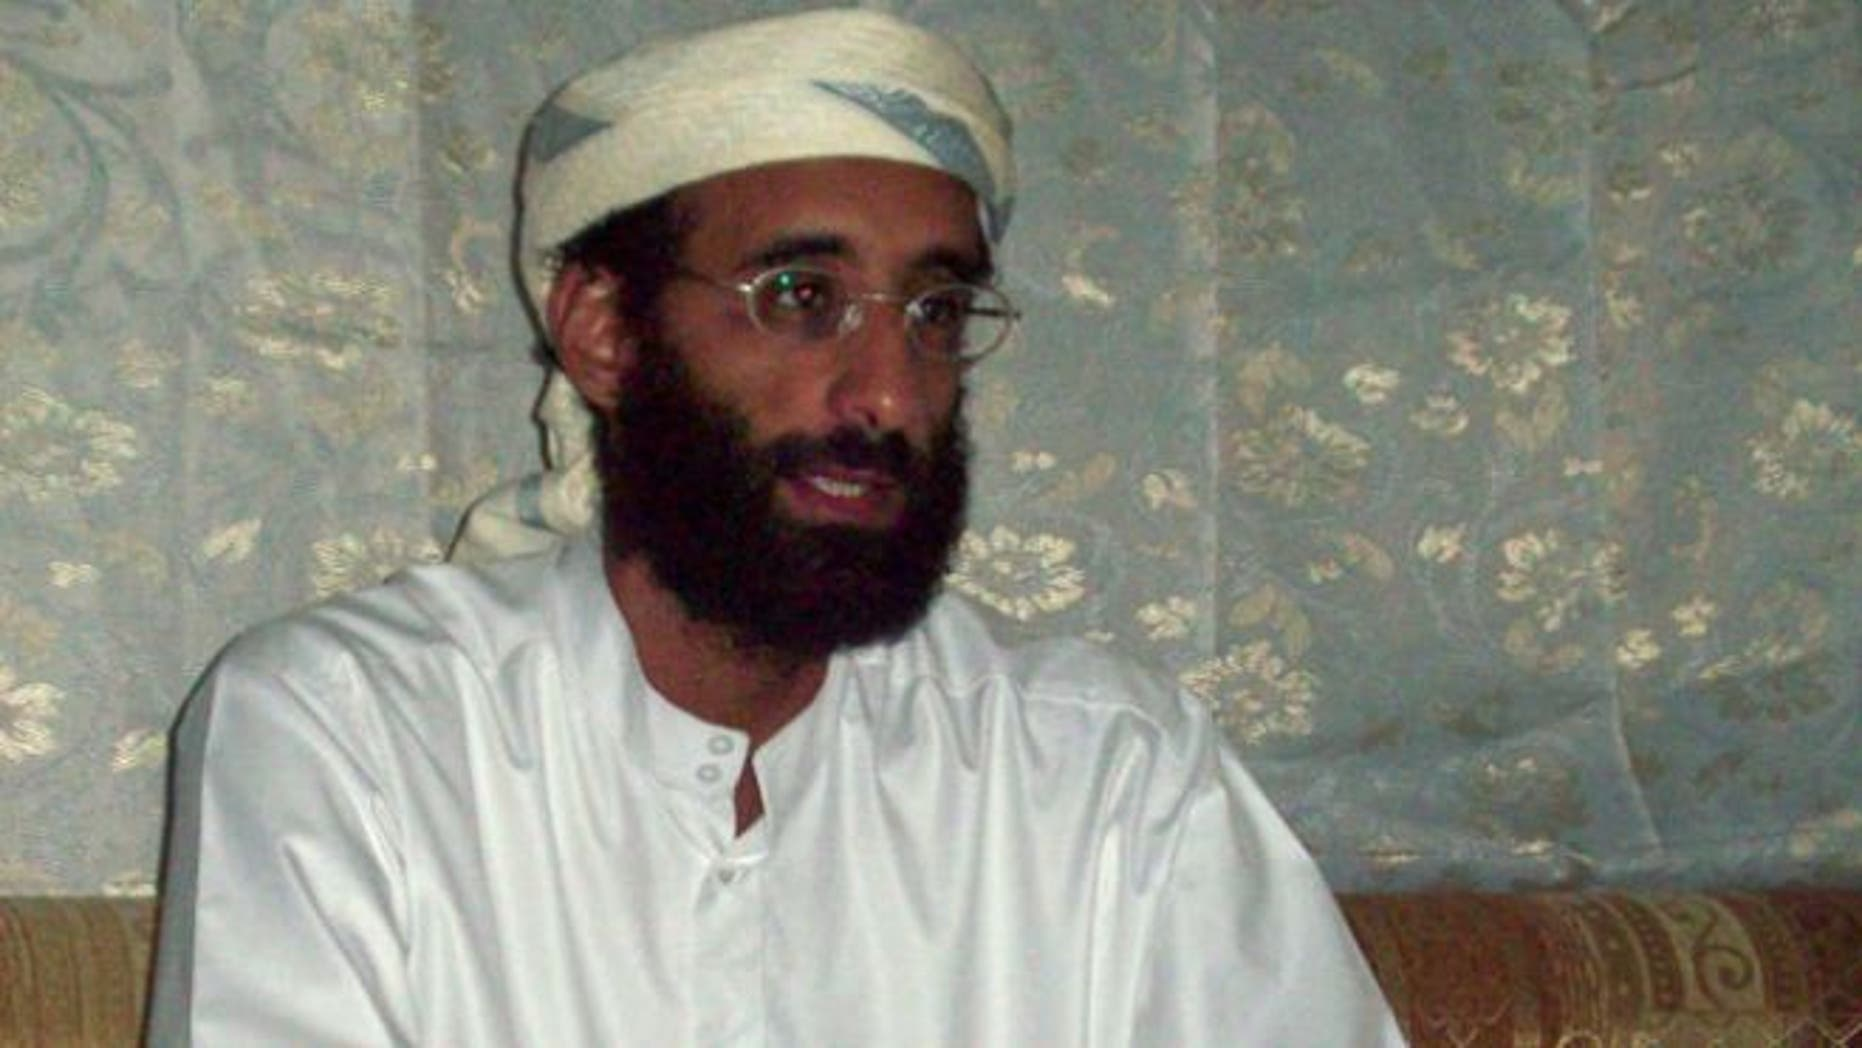 American Muslim cleric Anwar al-Awlaki, seen in this 2008 file photo, was killed by a U.S. drone strike in Yemen in 2011.